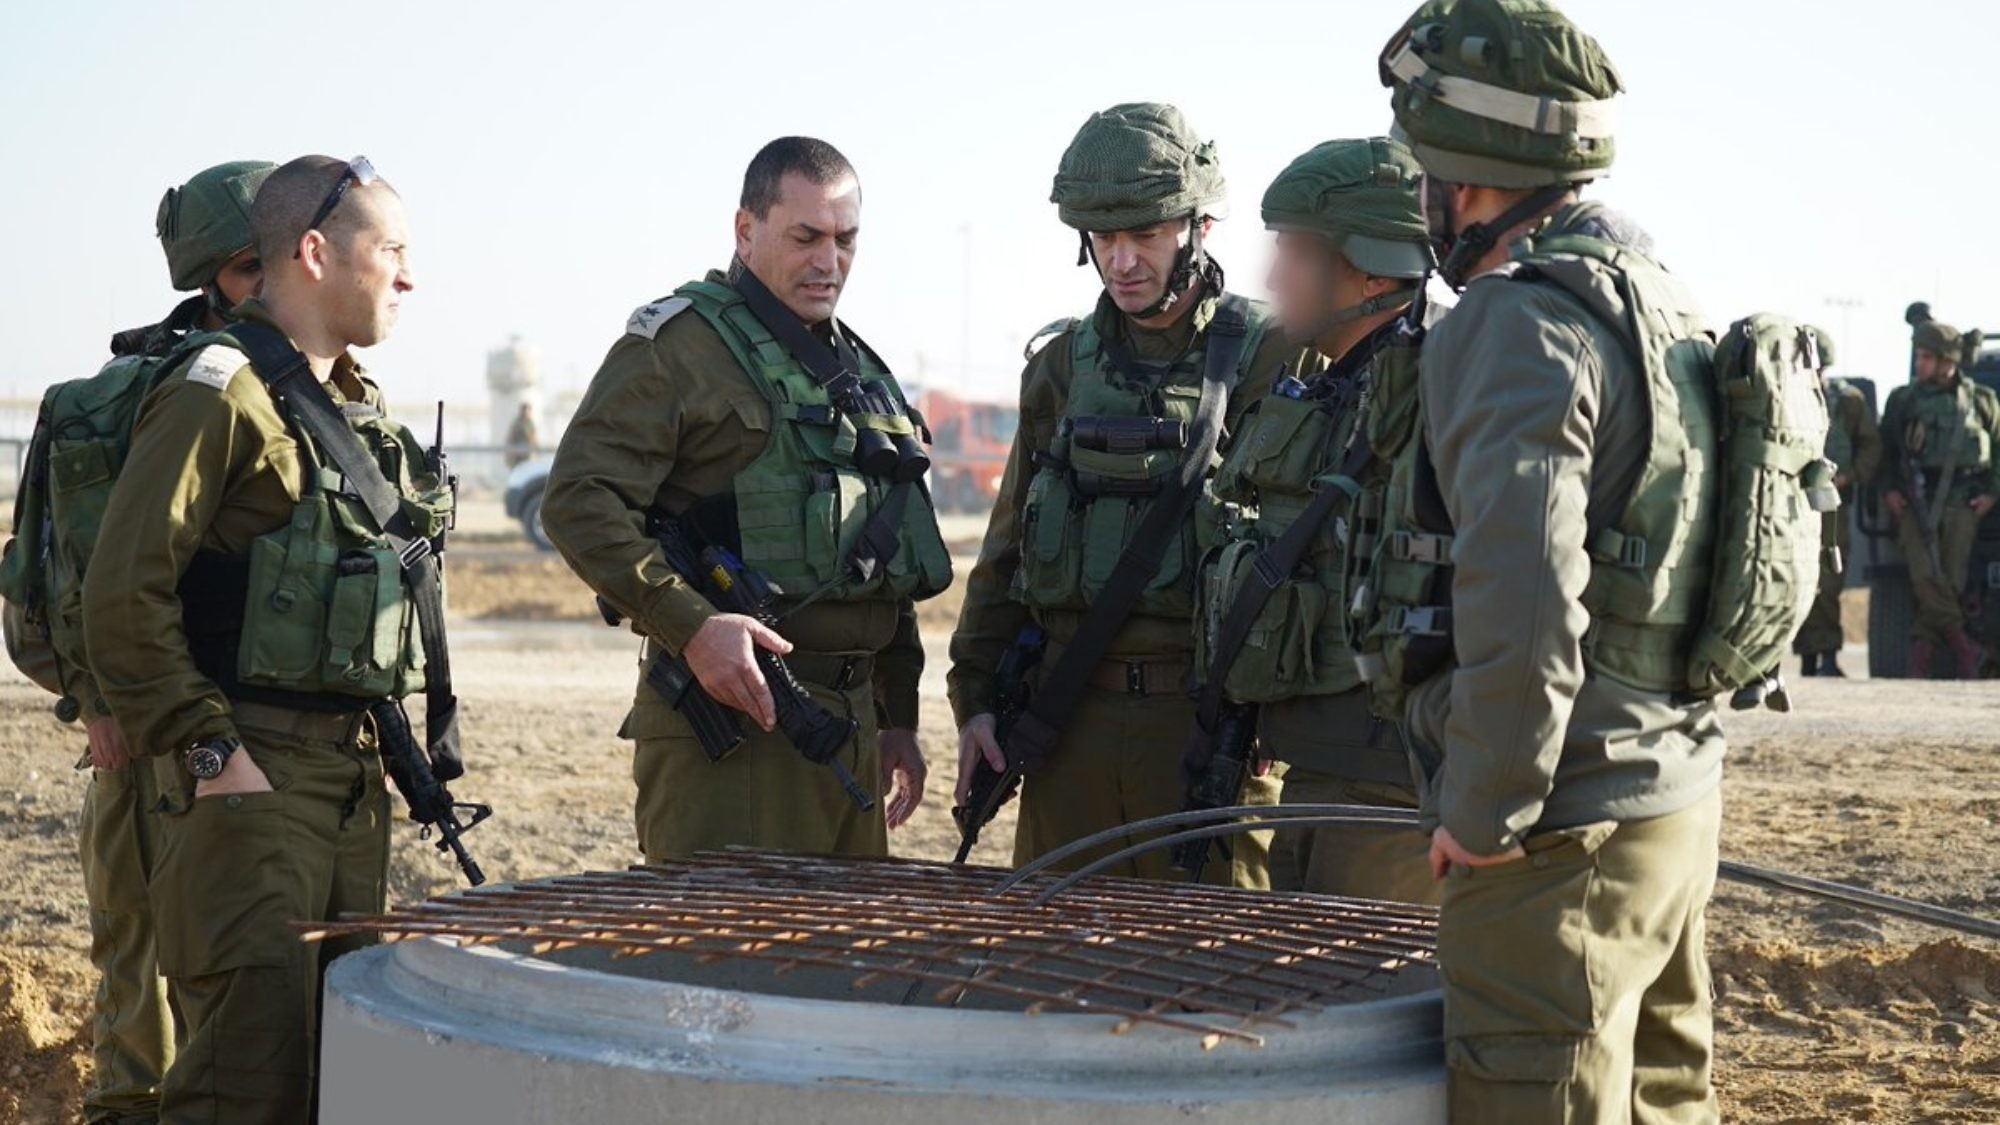 IDF officers visit the site where a terror tunnel was exposed at Israel's Kerem Shalom border crossing with Gaza on Sunday. Credit: IDF Spokesperson's Unit.